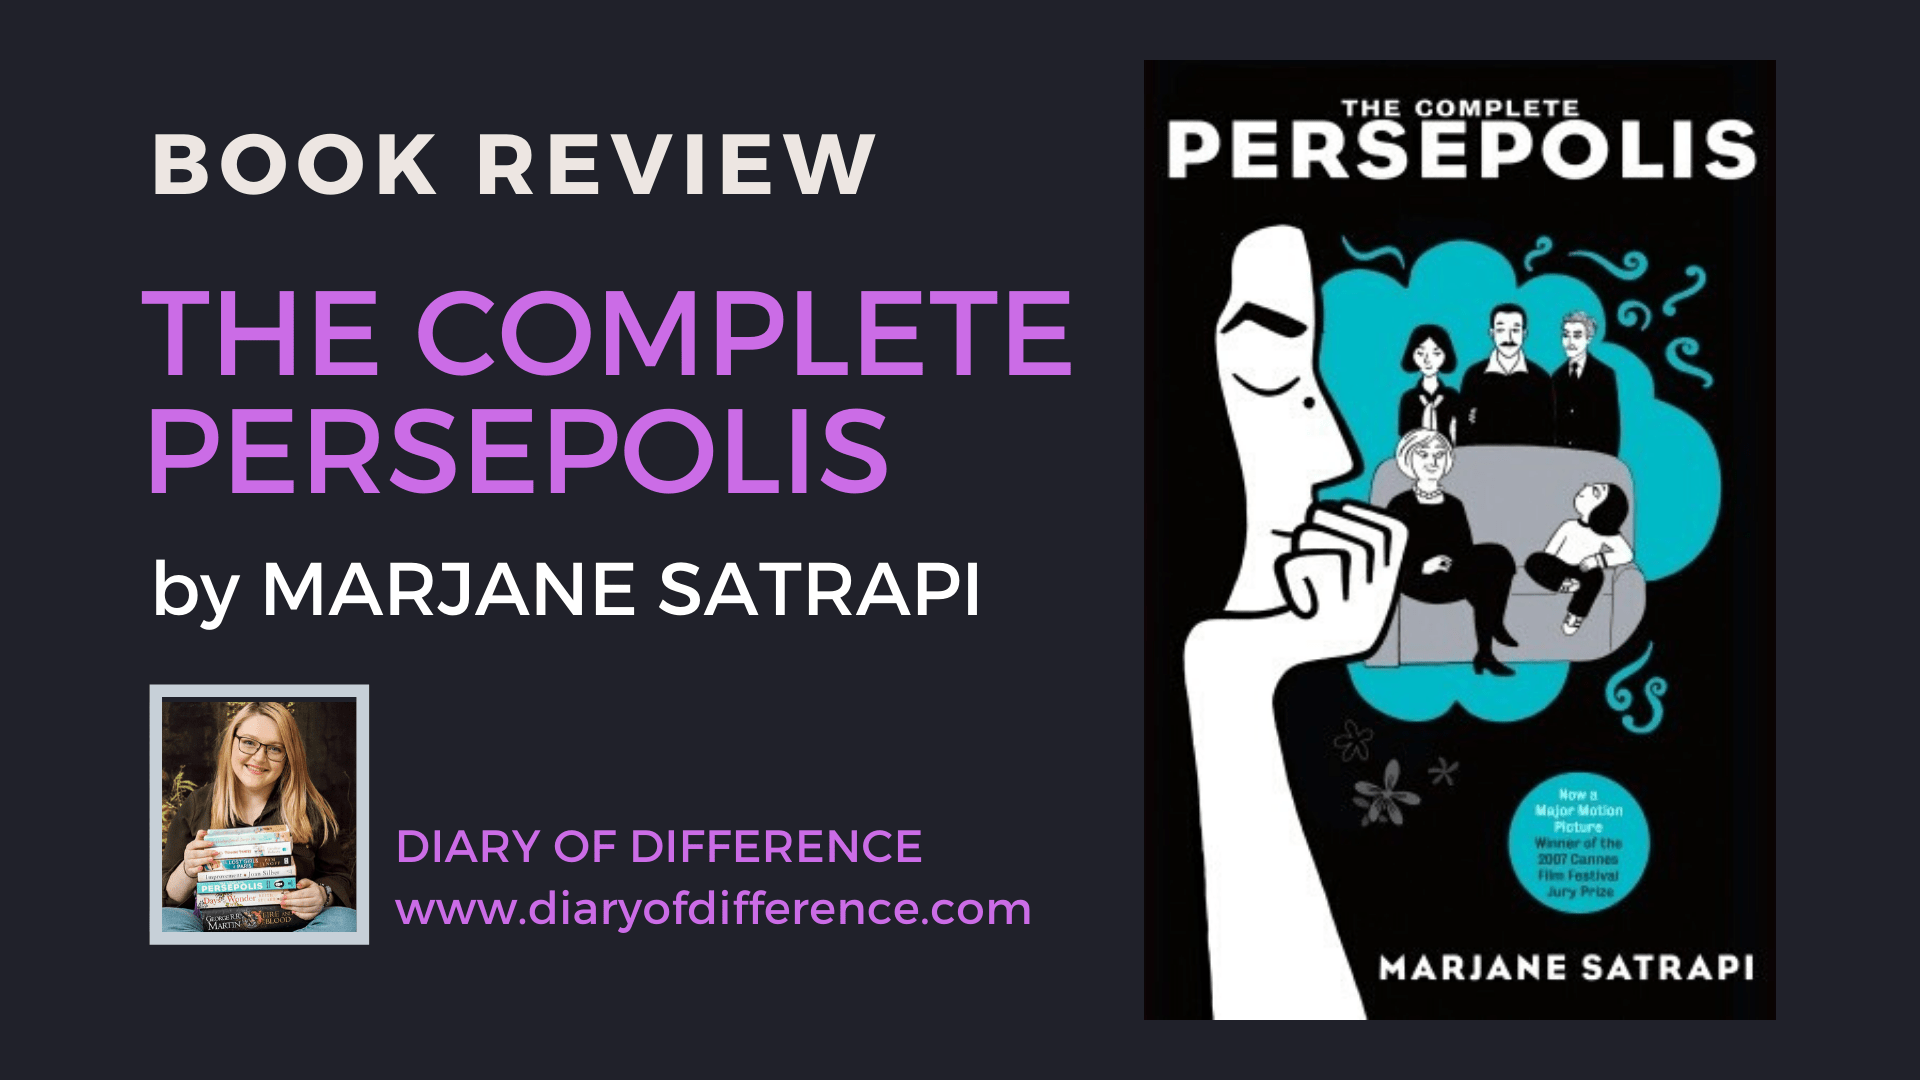 The Complete Persepolis By Marjane Satrapi Book Review Diary Of Difference